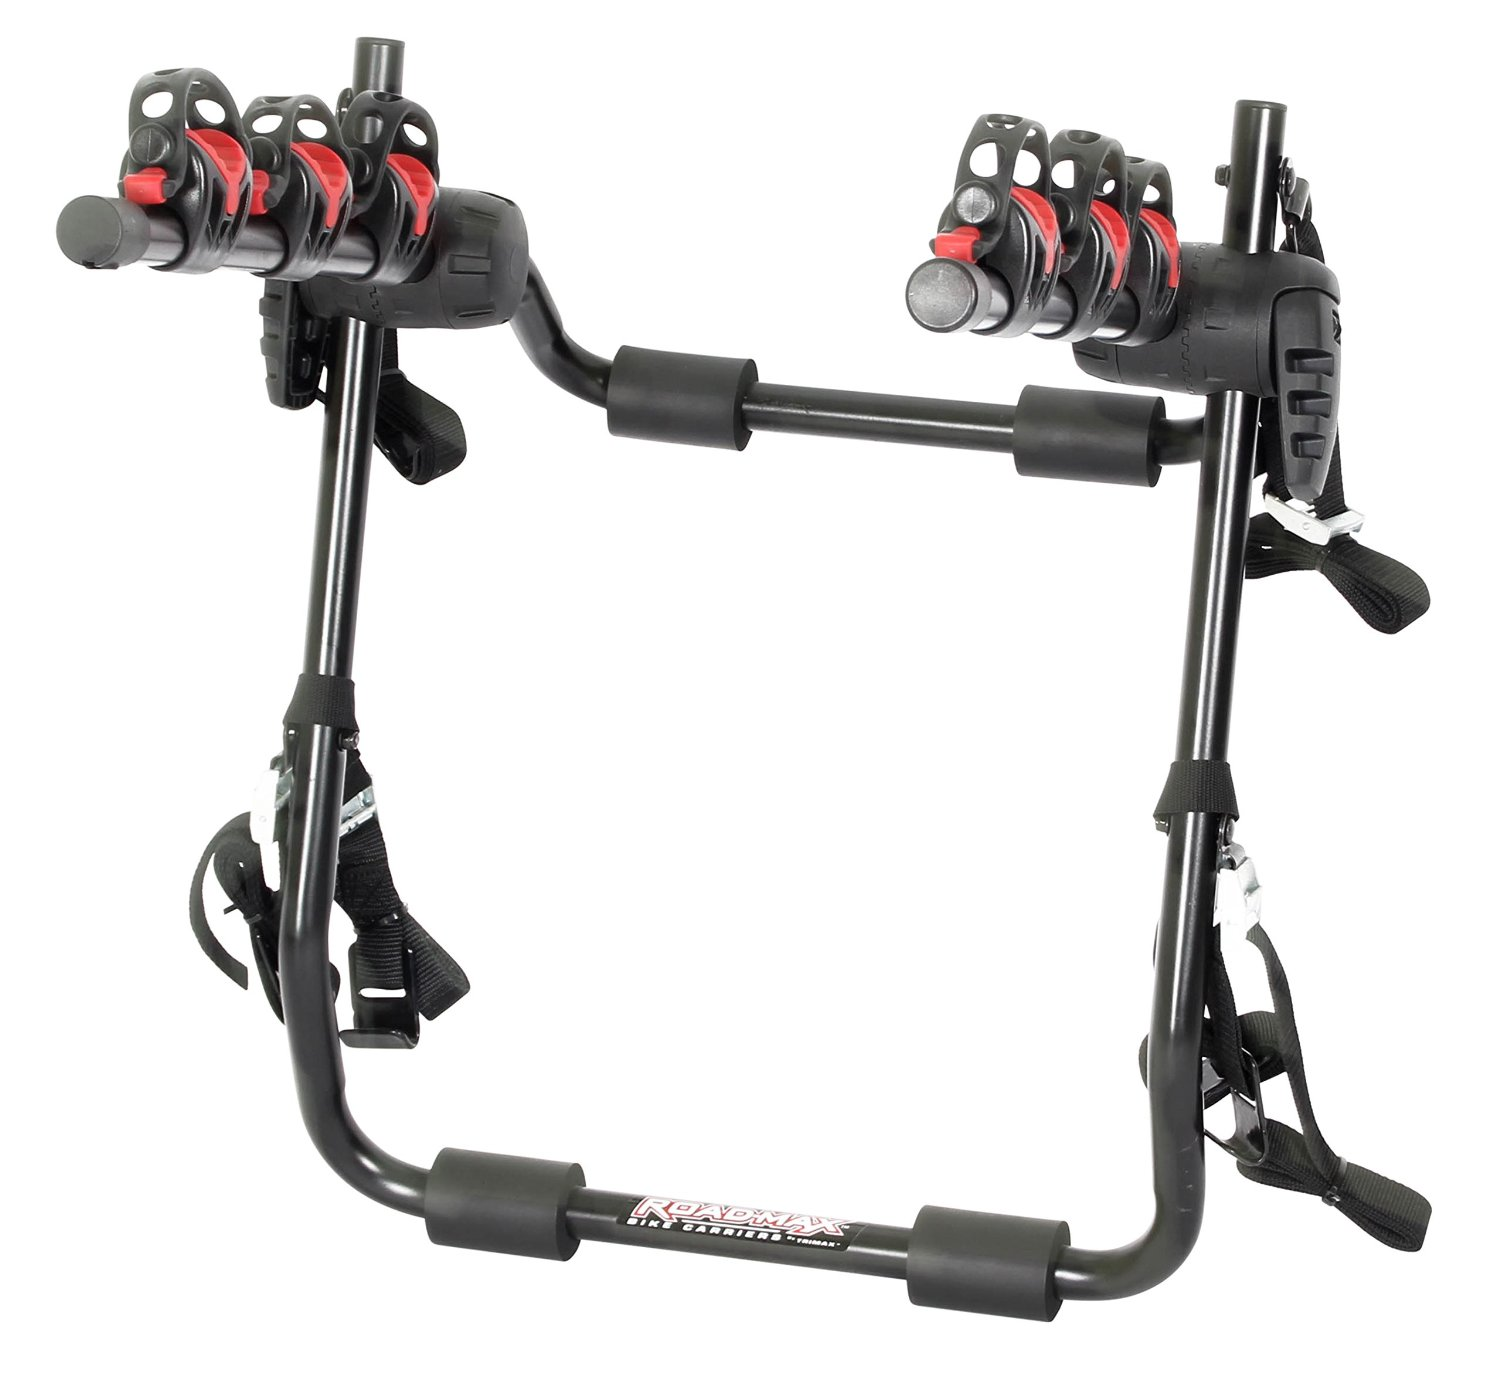 Road-Max RMER3 Universal Trunk Mount 3 Bike Carrier